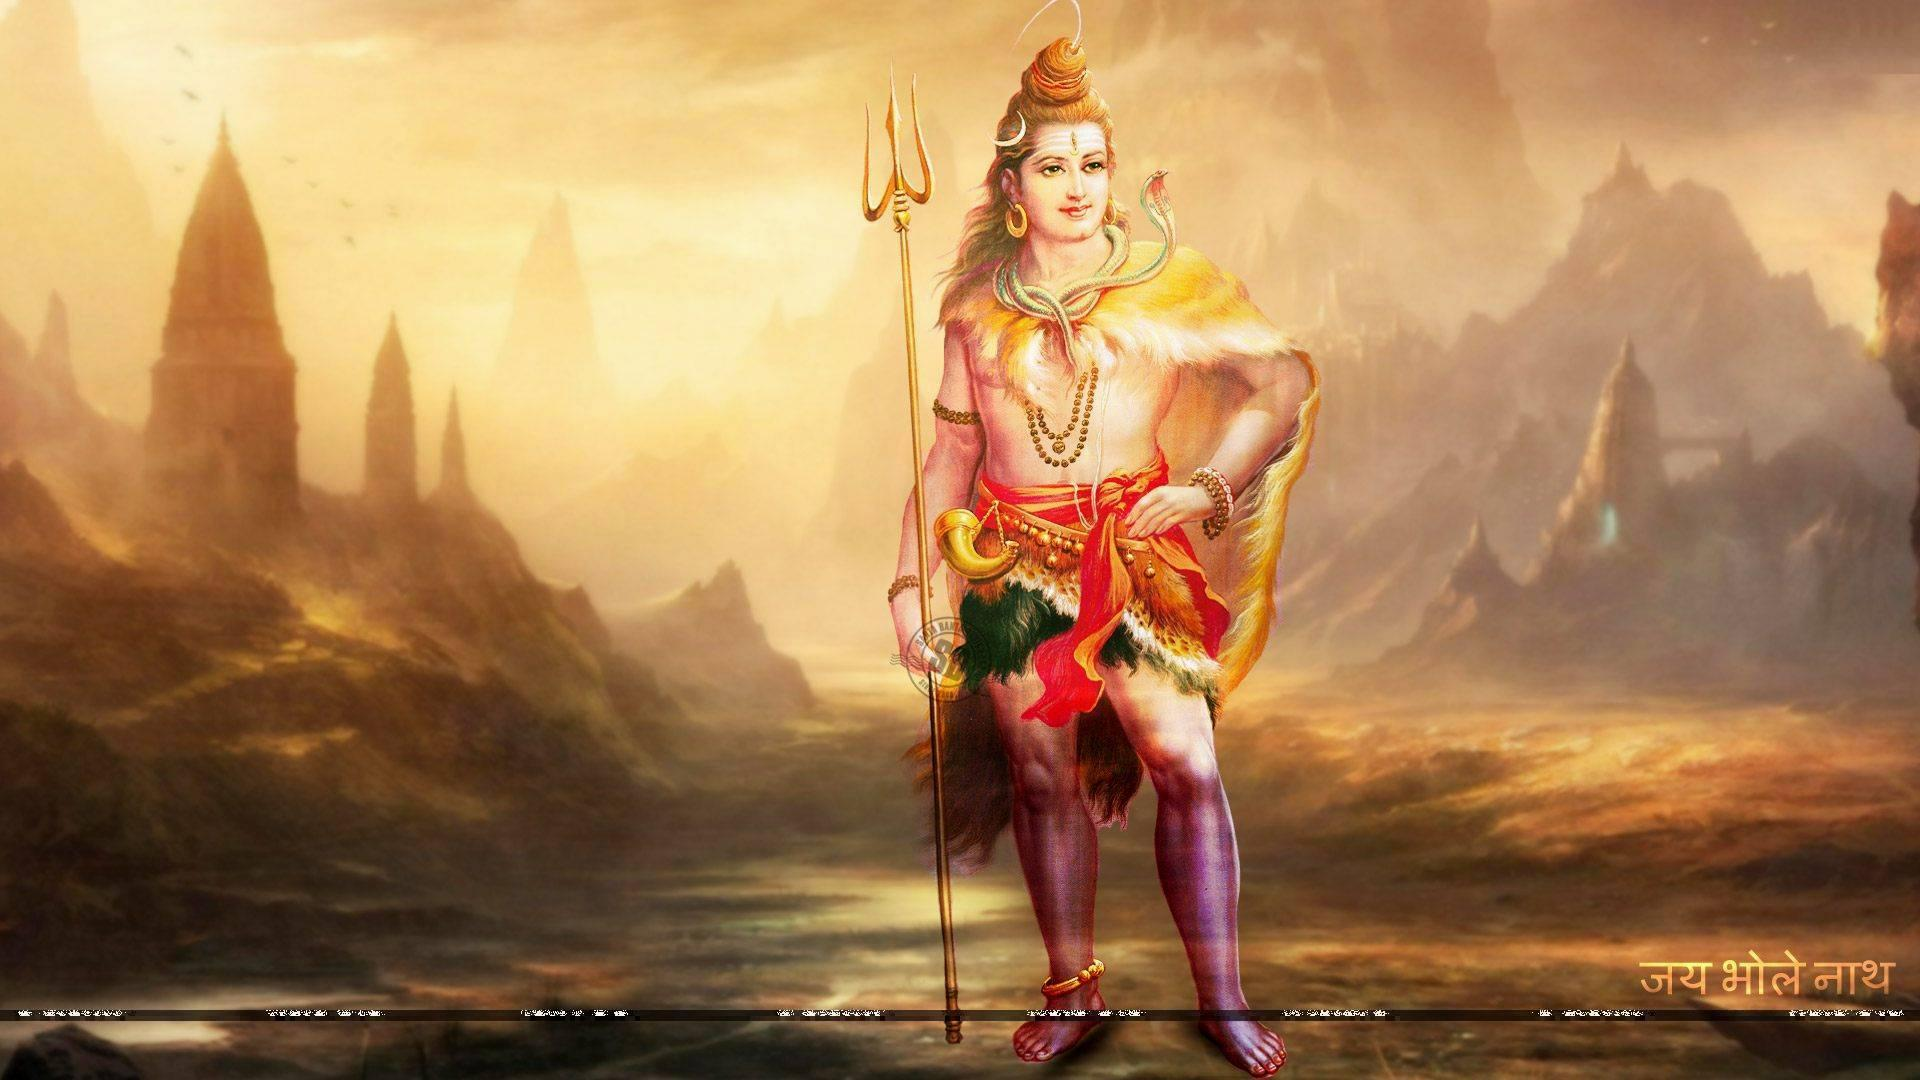 Lord Shiva Images, HD Photos, Pictures & Wallpapers Download